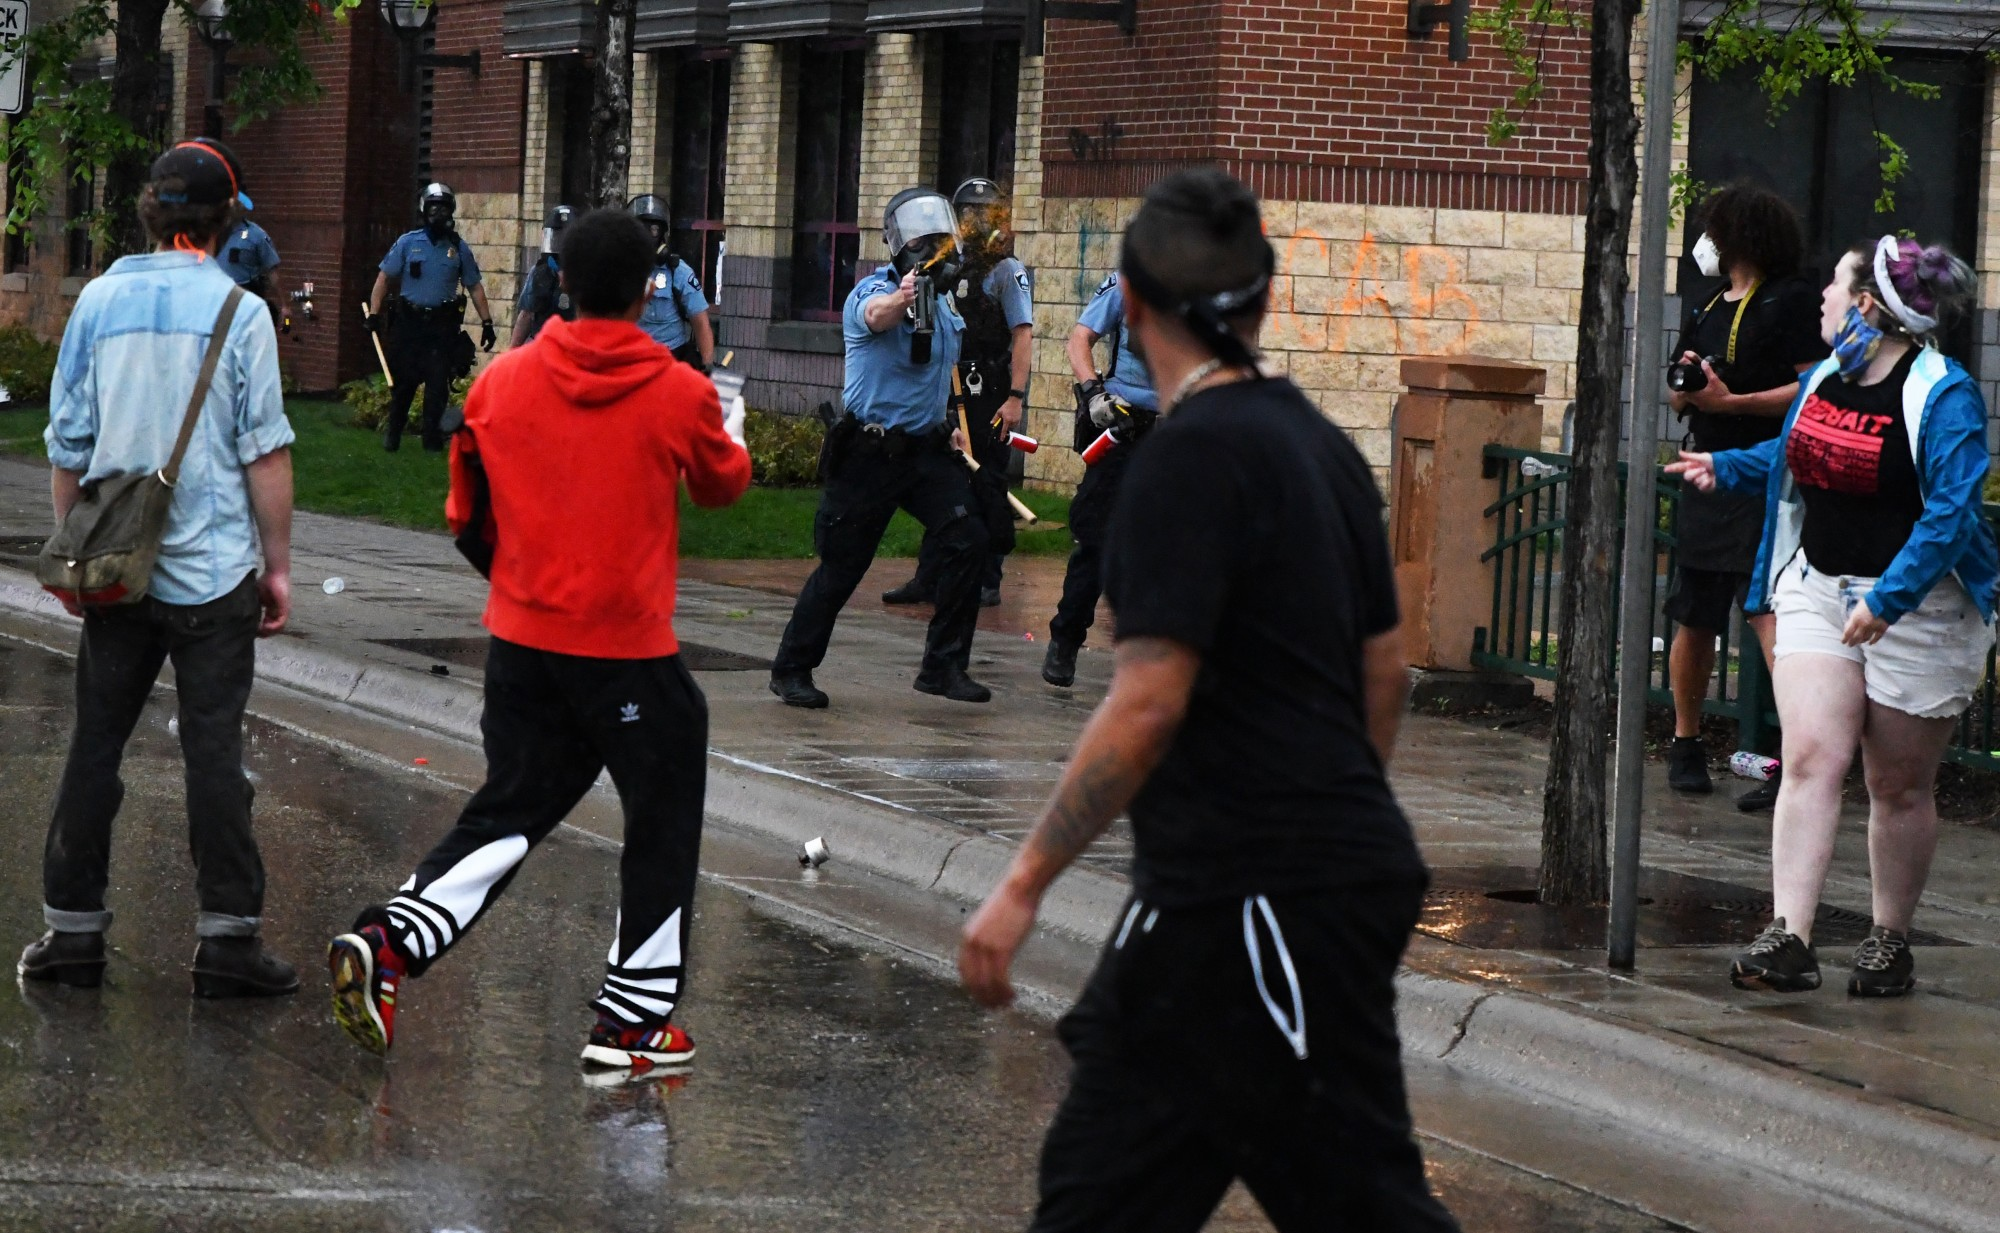 <p>A police officer pepper sprays a demonstrator while running after them outside of the Minneapolis 3rd Police Precinct on Minnehaha Avenue on Tuesday, May 26.</p>